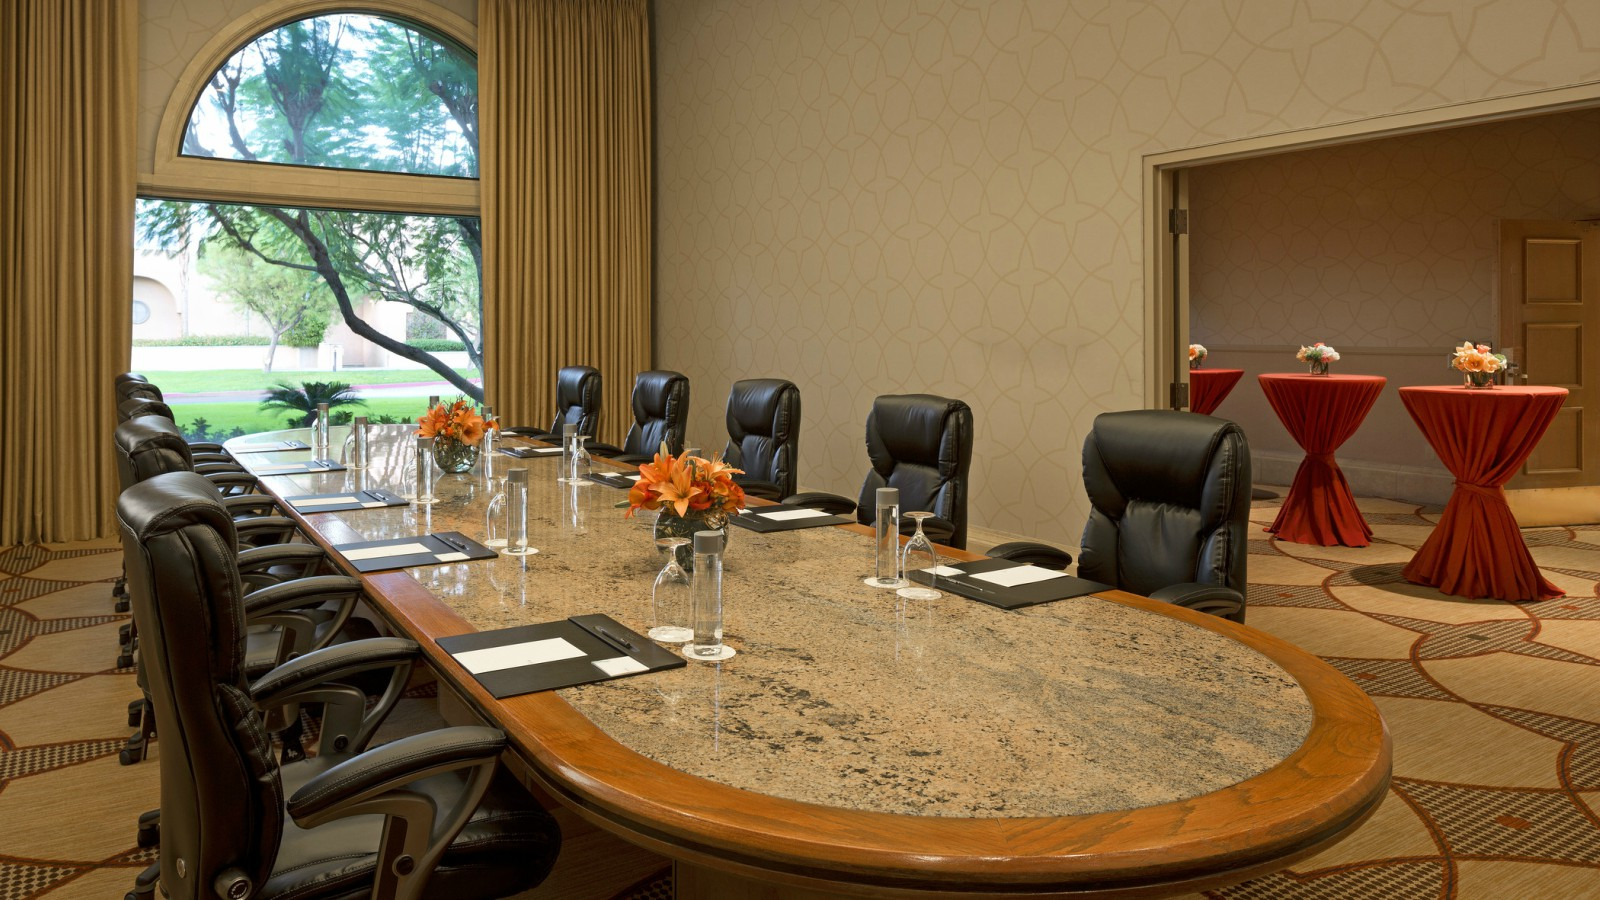 Palm Springs Meetings and Events - Mission Hills Boardrooms